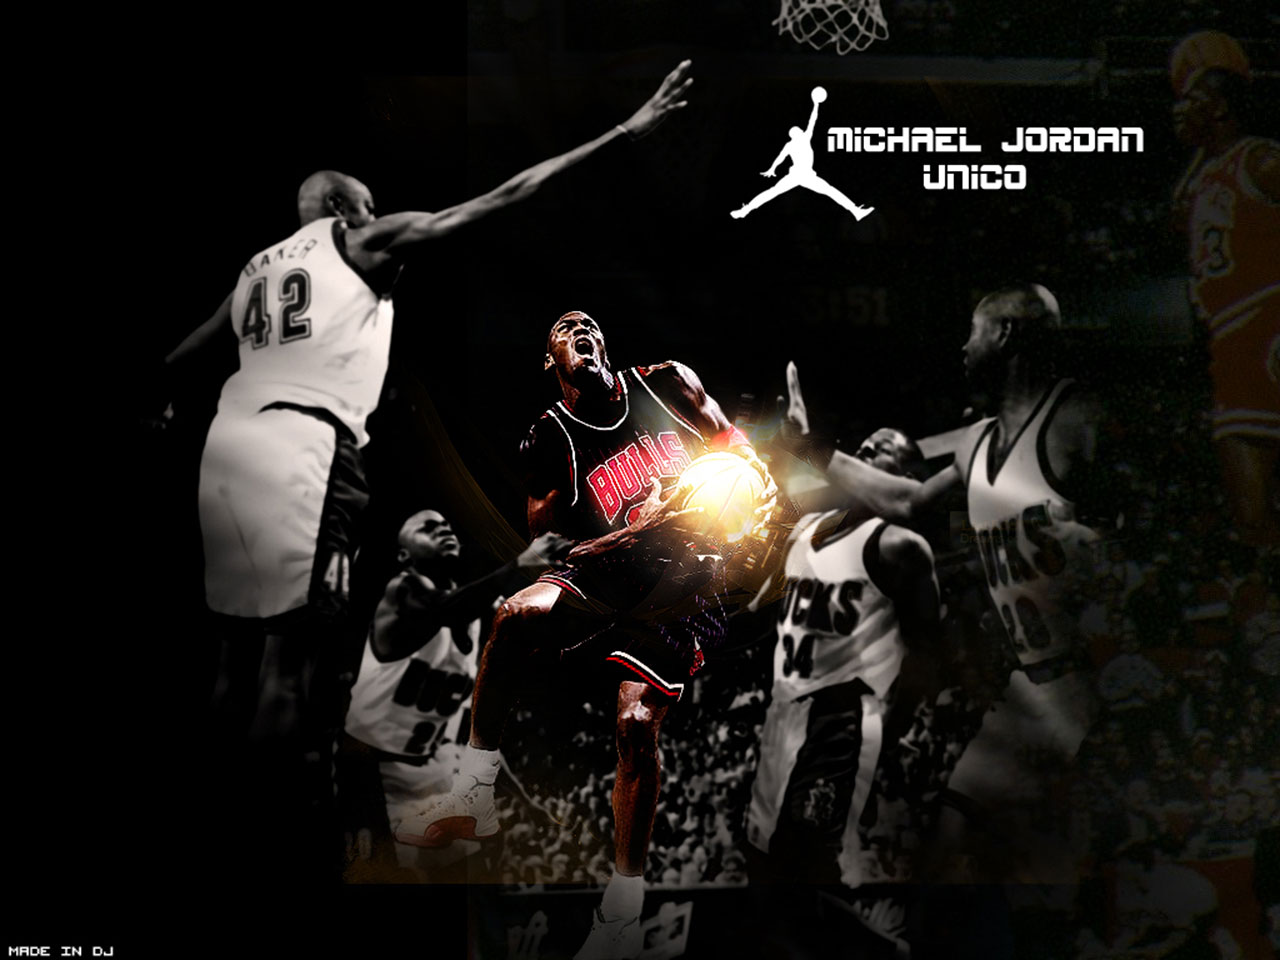 Download-x-Michael-jordan-Chicago-bulls-Nike-wallpaper-wp3404995